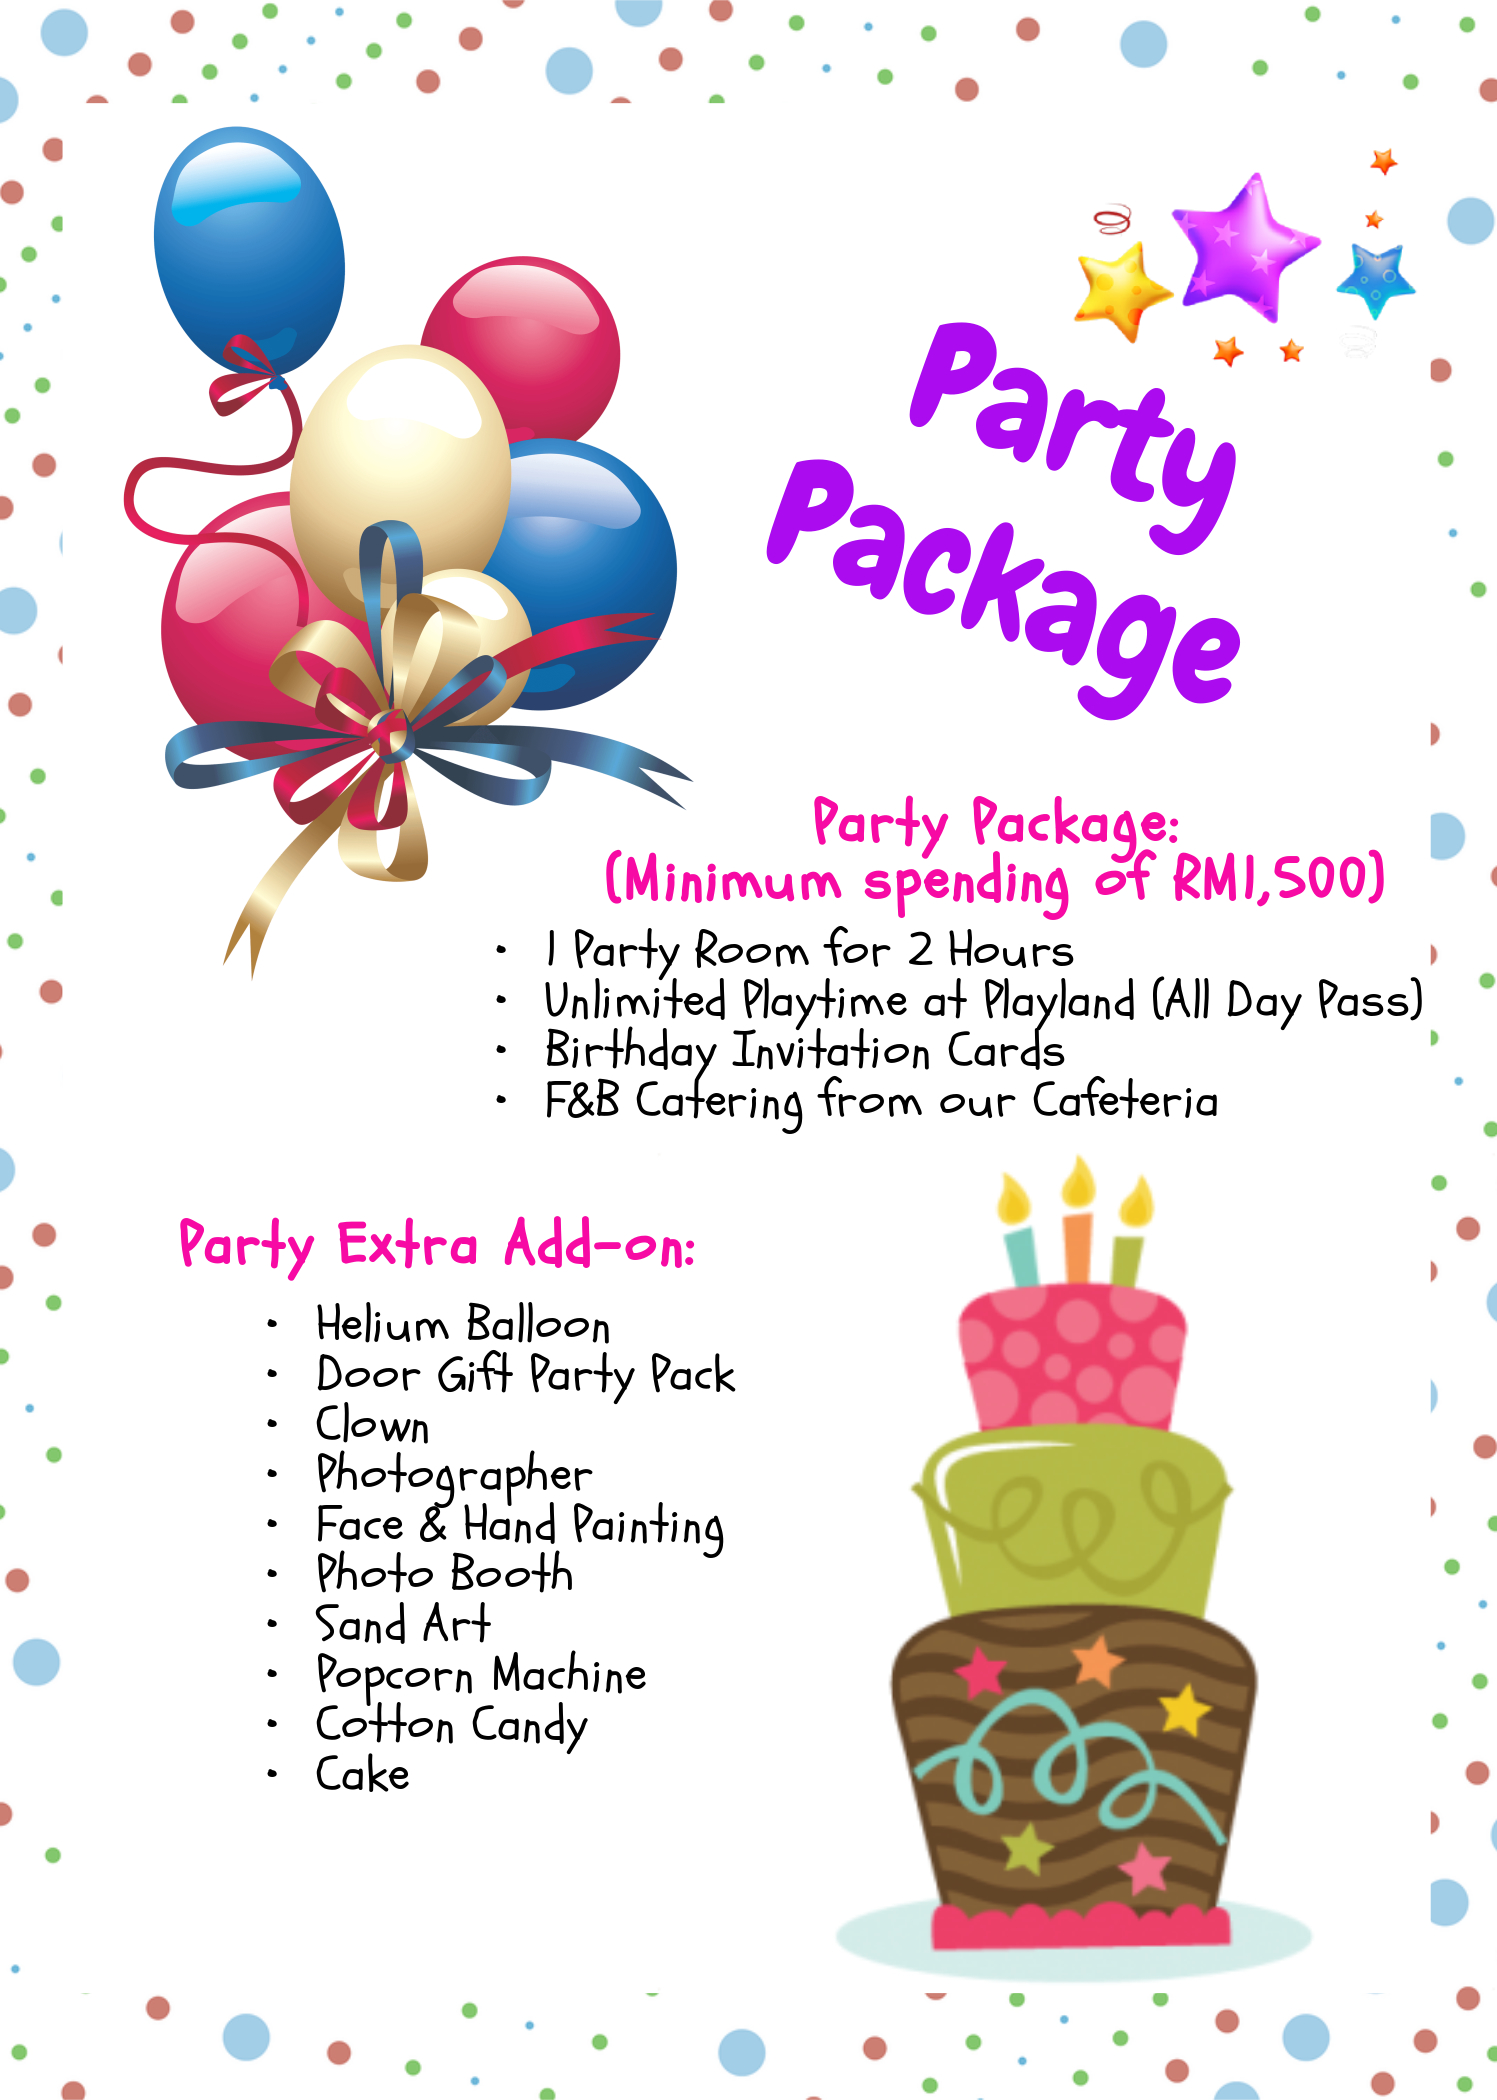 Kidz Zone's Birthday Party Package